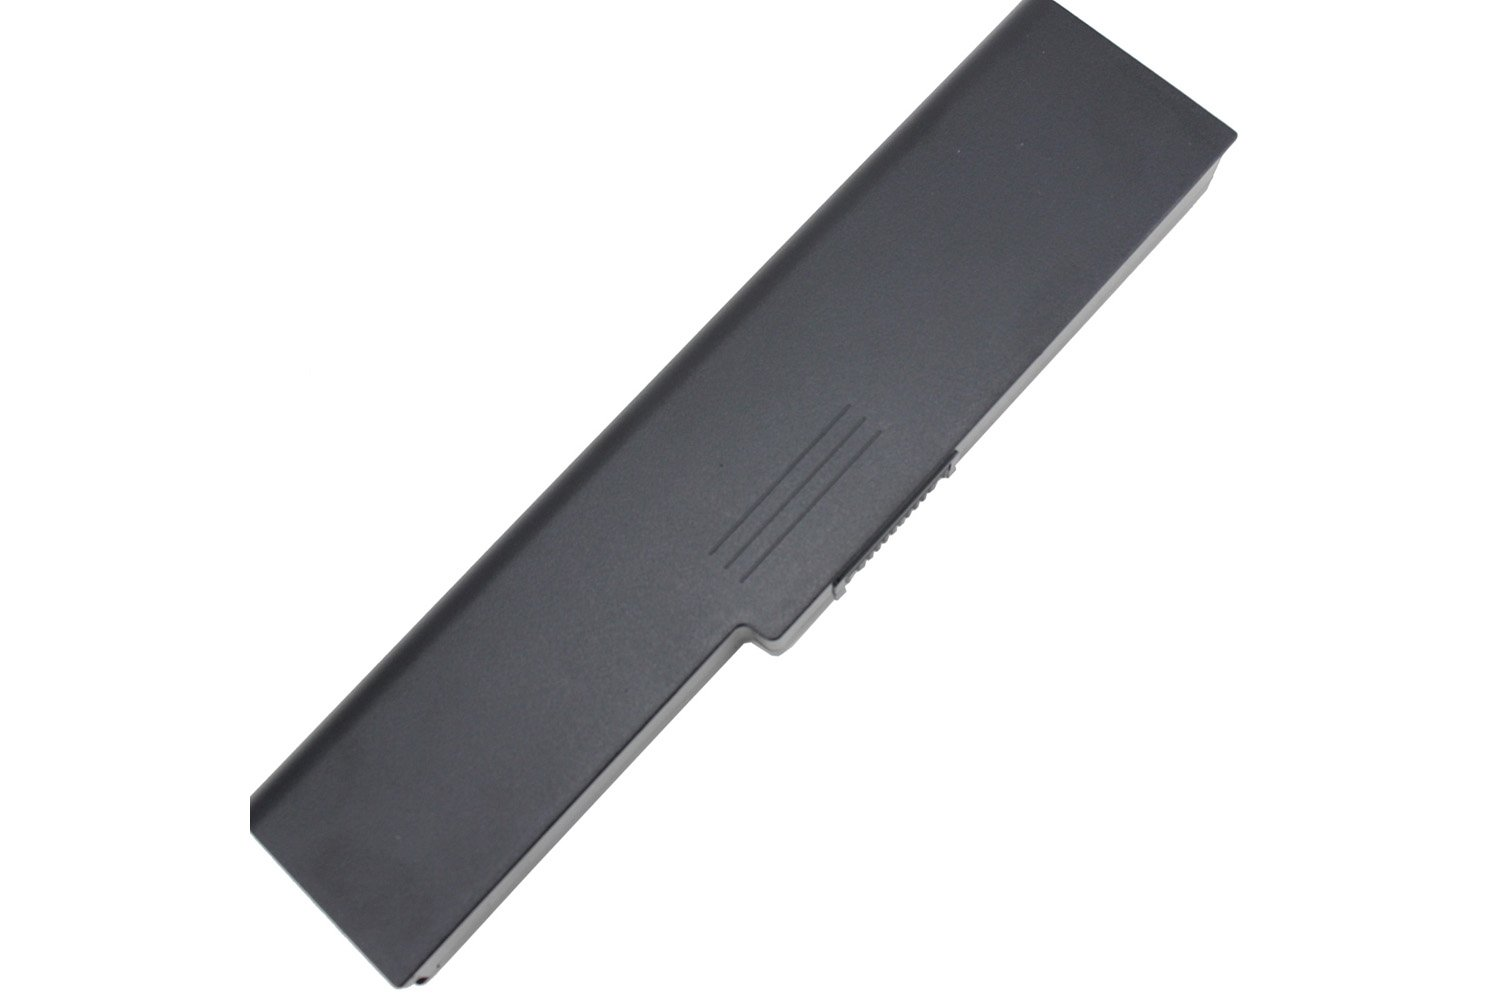 Easy&Fine PA3817U-1BRS Laptop Battery for Toshiba Satellite A665 A665-S5170 A665-S6086 A665-S6050 M645-S4050 M645-S4070 M505-S4940 L755-S5277 L775D-S7222 P755-S5265 C675-s7103 C675-s7106 by Easy&Fine (Image #4)